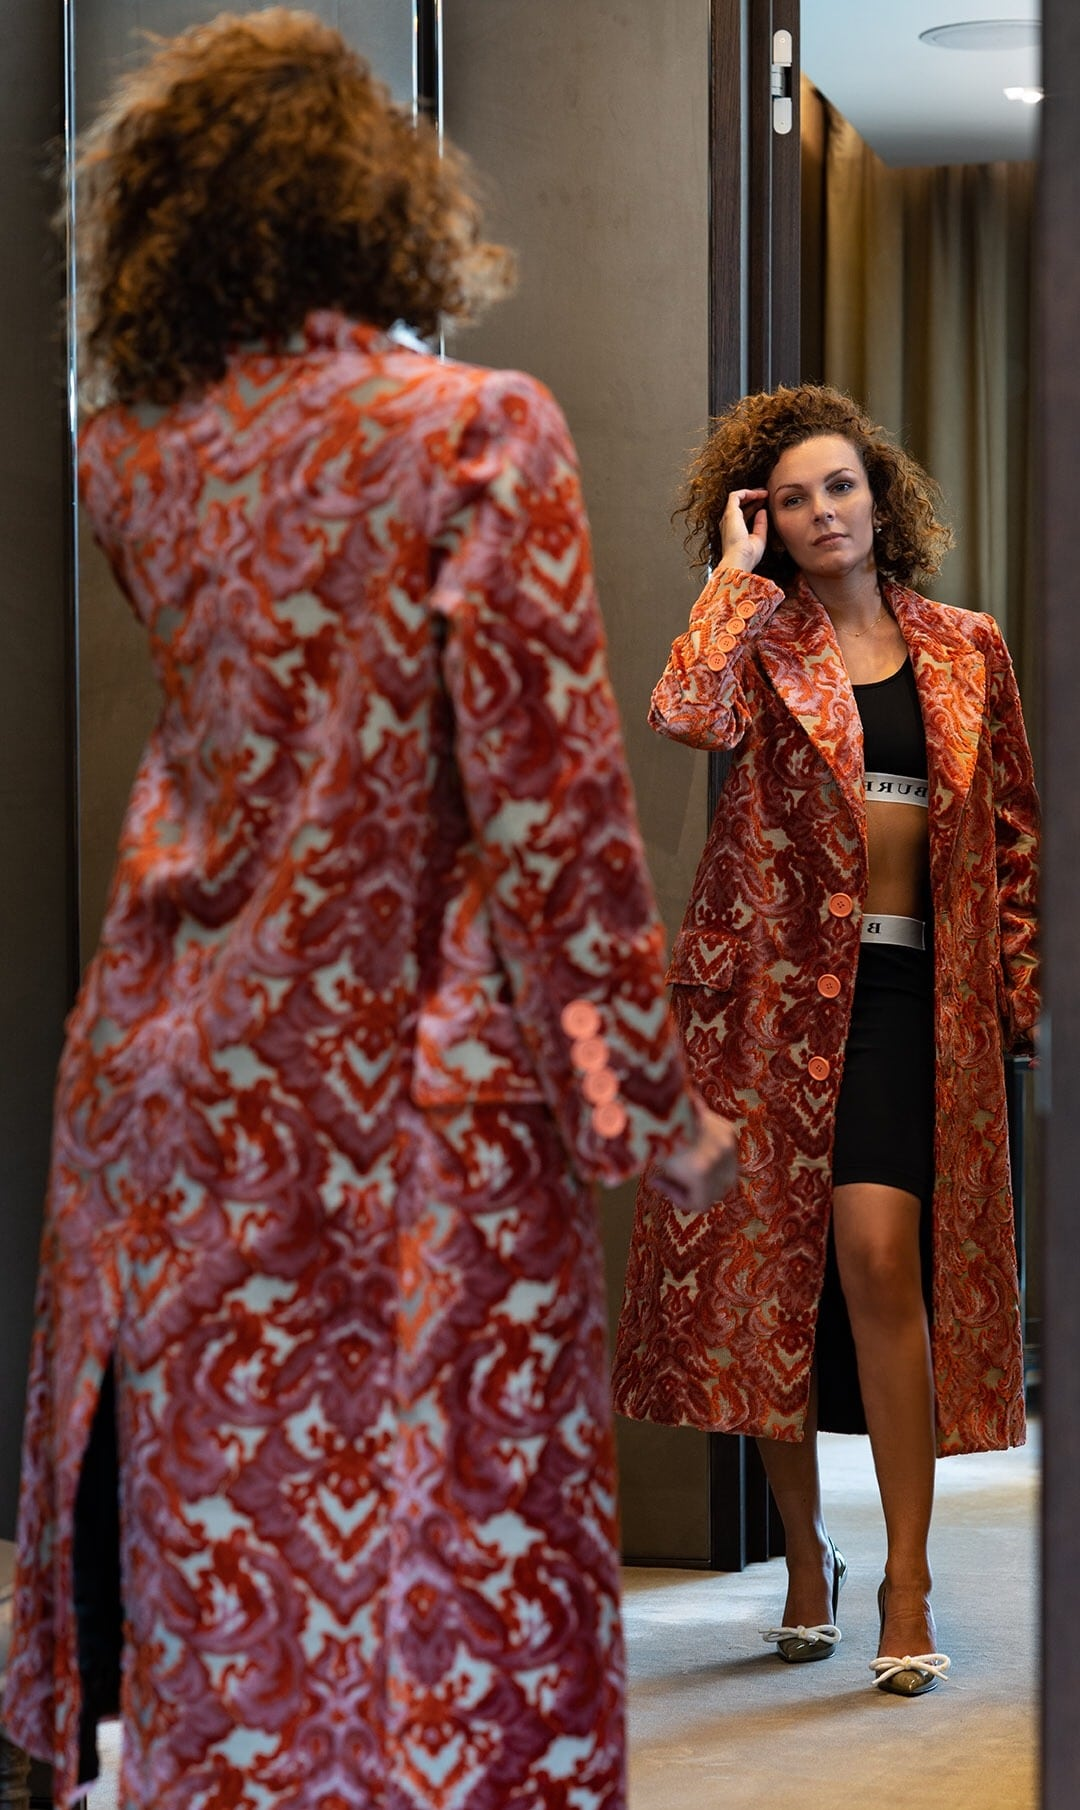 Damask coat in Burberry's VIP fitting room